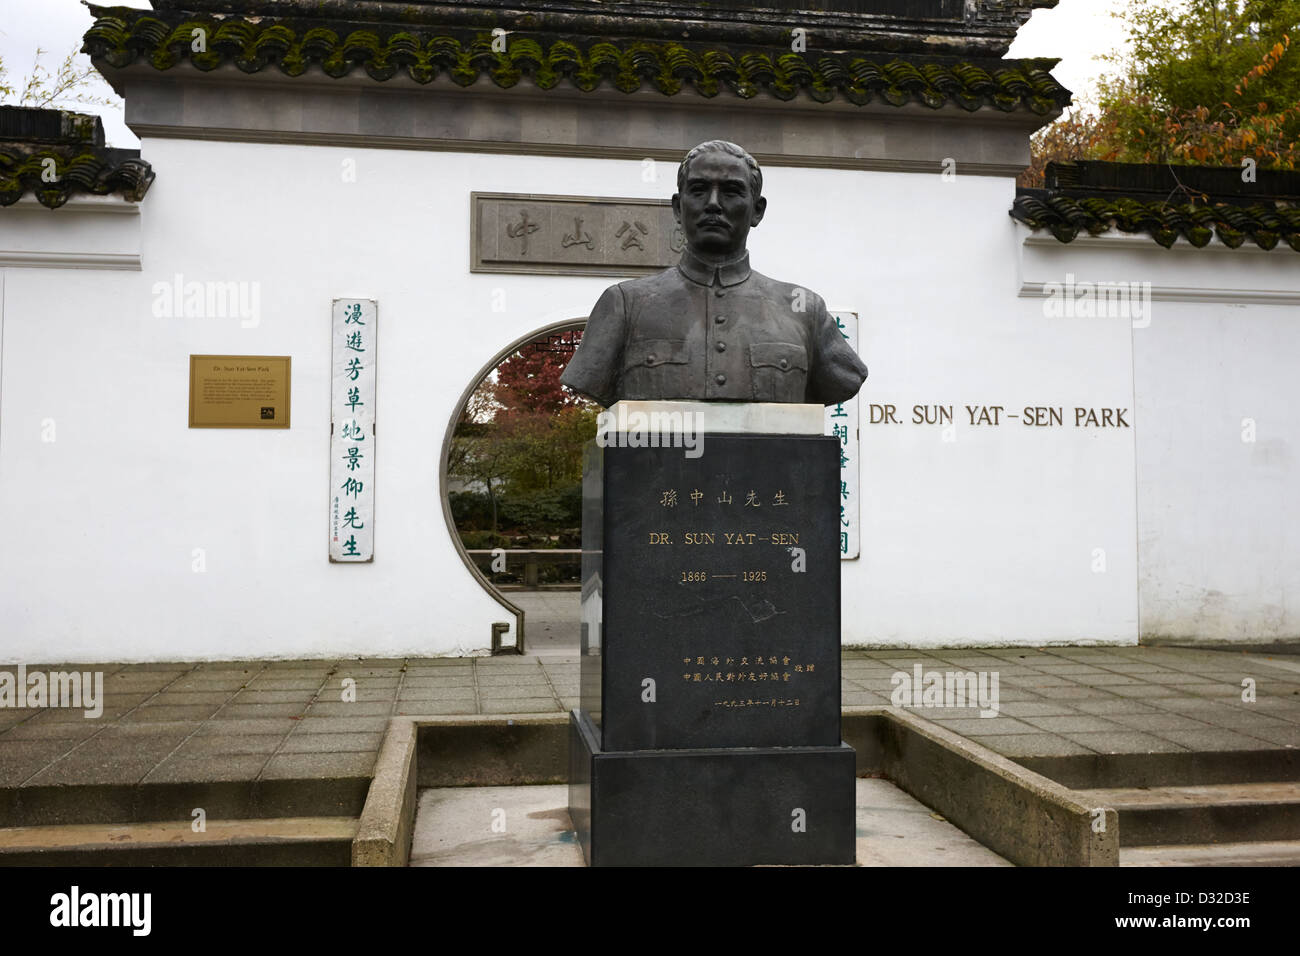 dr sun yat sen bust outside chinese park chinatown Vancouver BC Canada - Stock Image